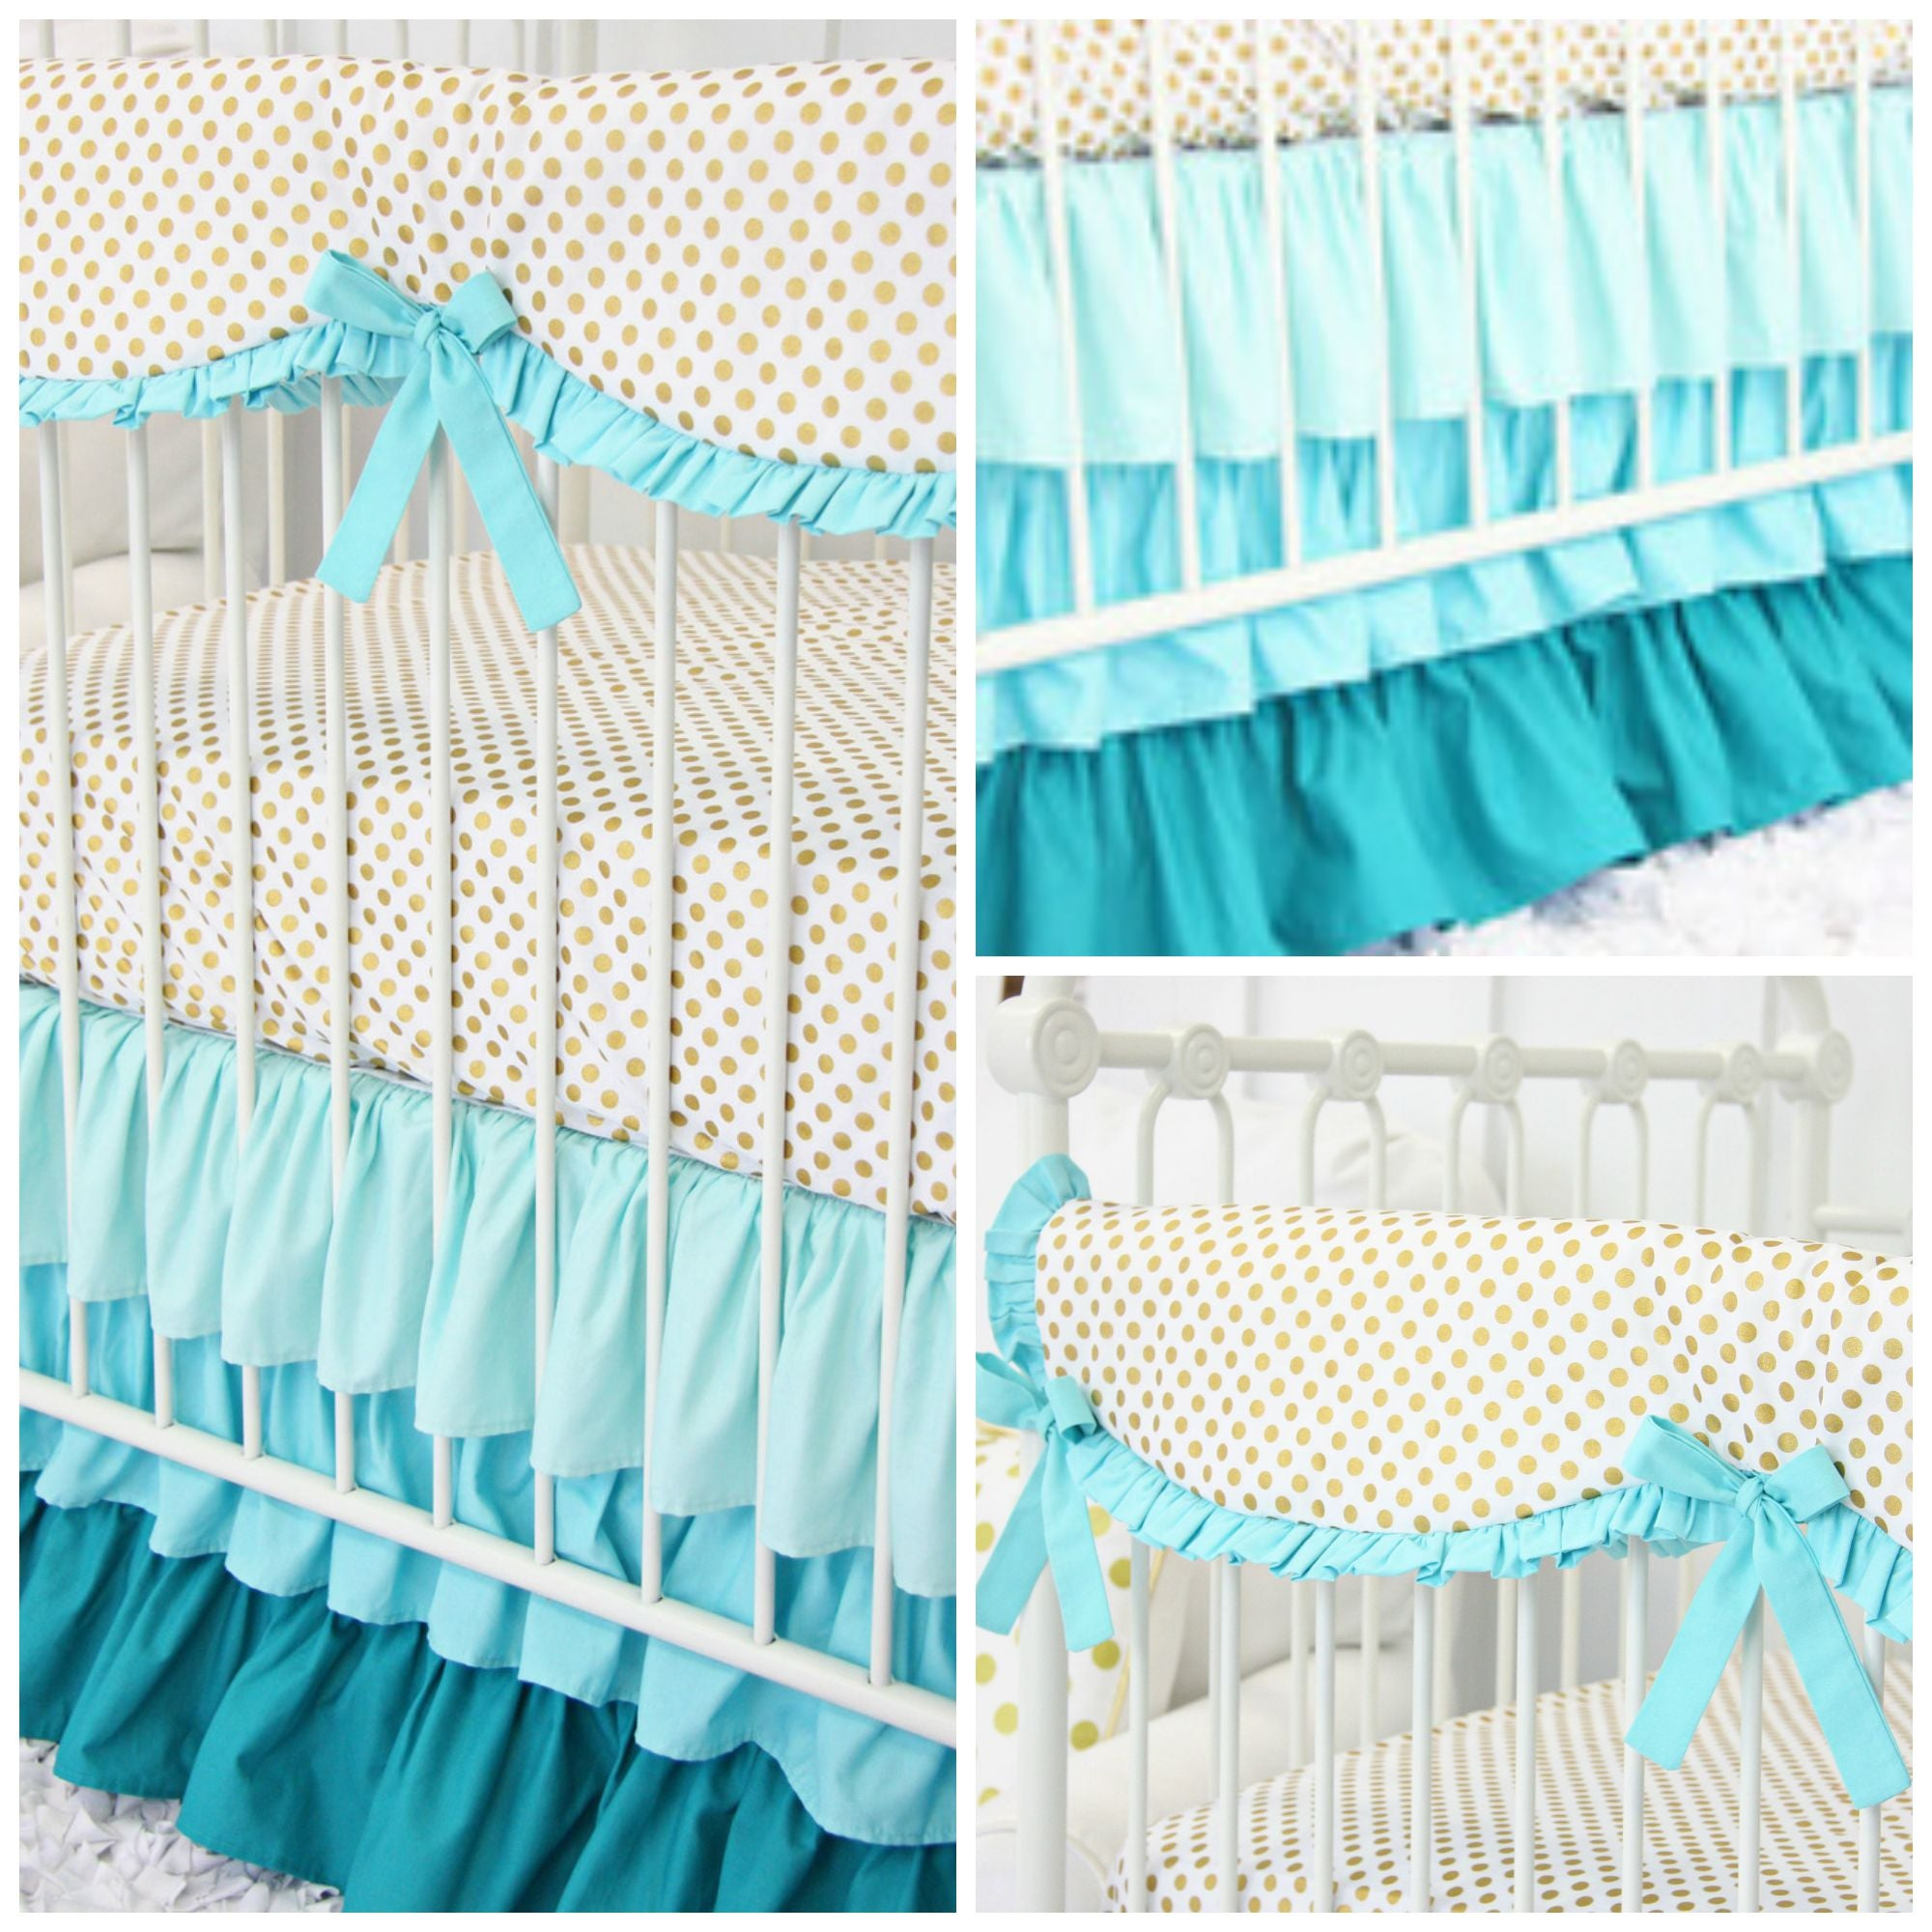 aqua & gold dot baby bedding that's perfect for an aqua nursery design